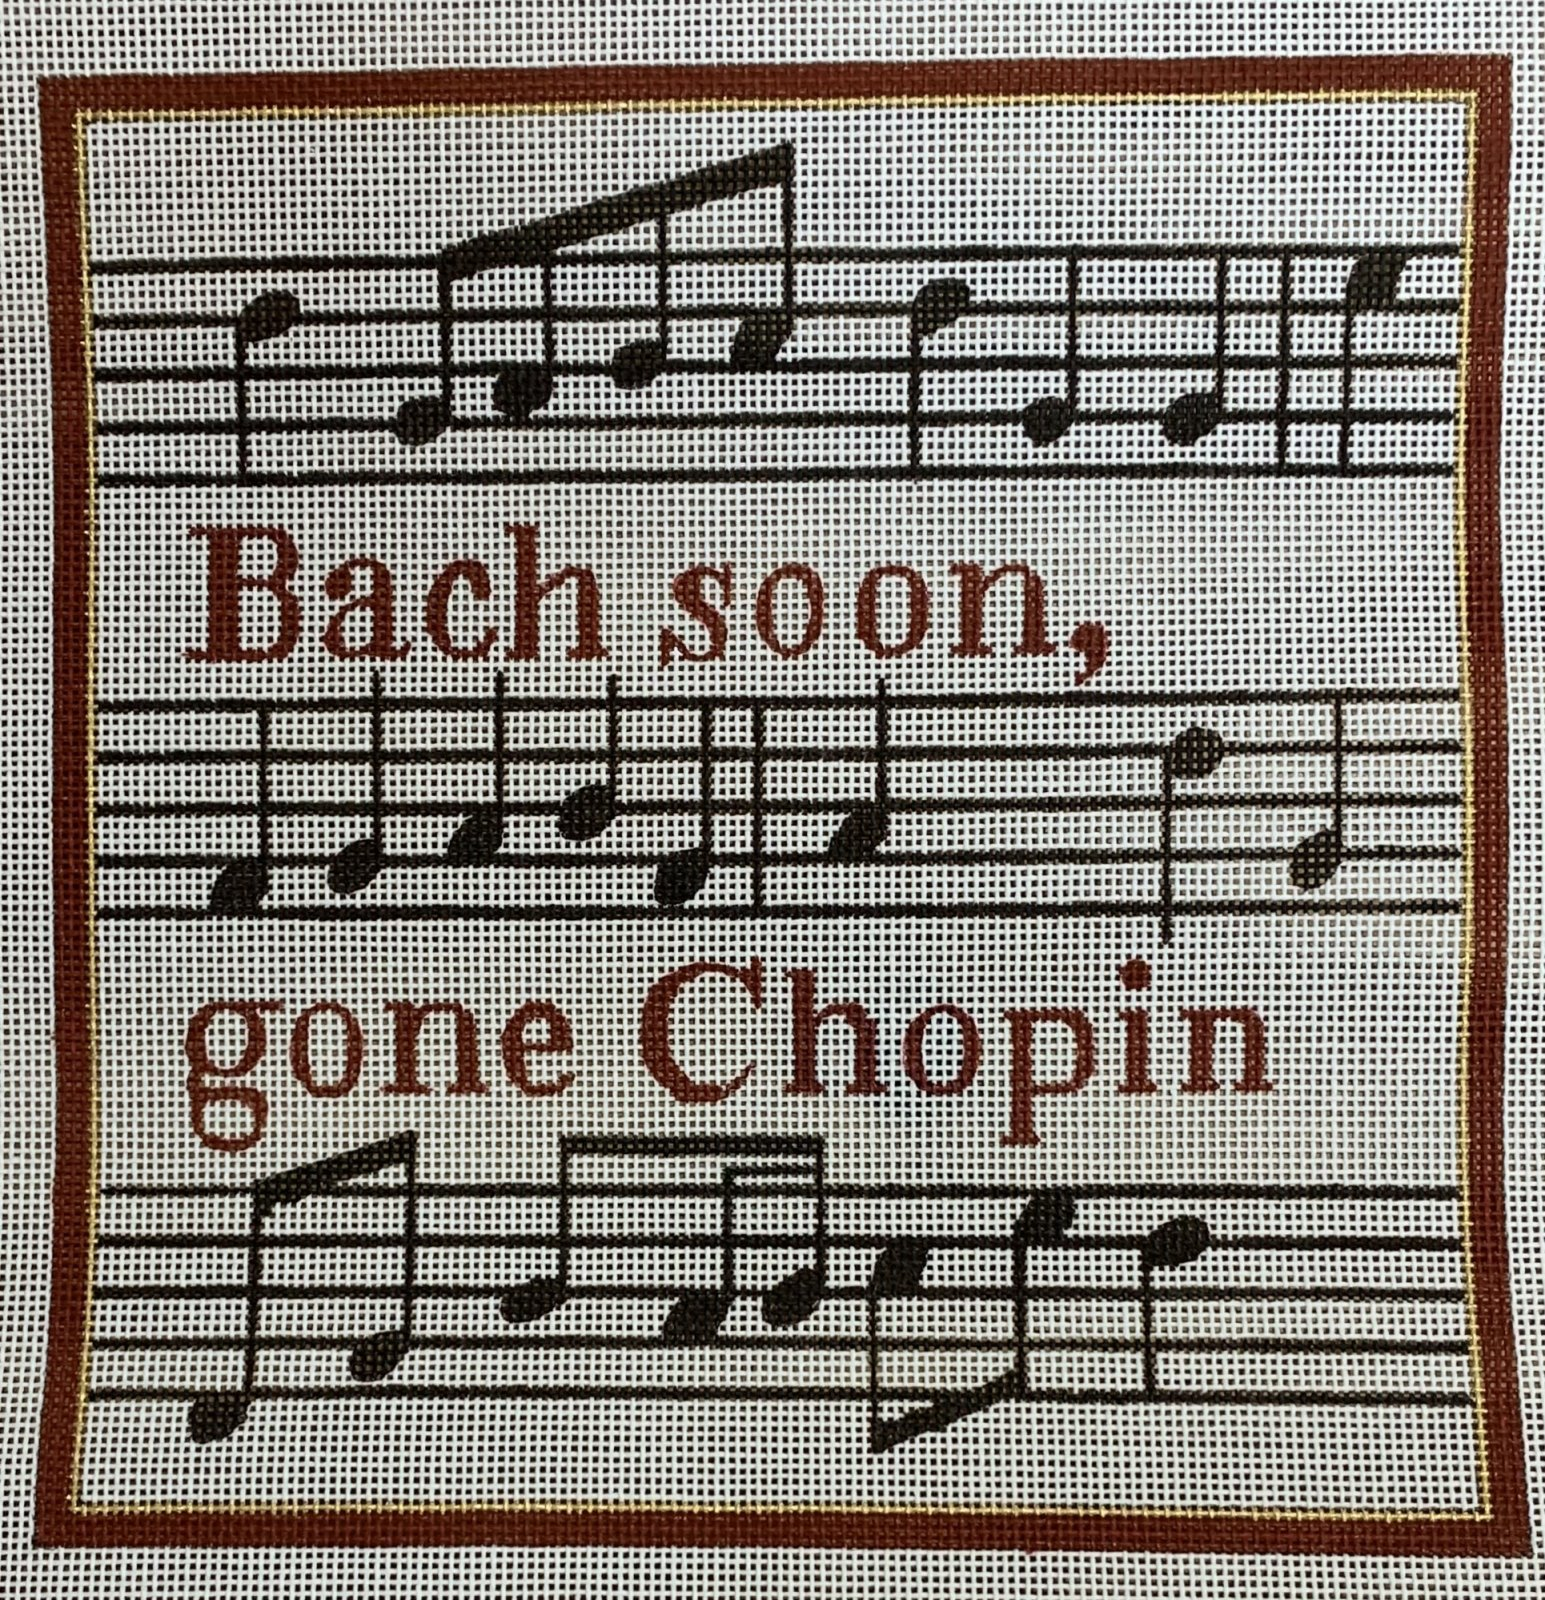 Bach Soon Gone Chopin